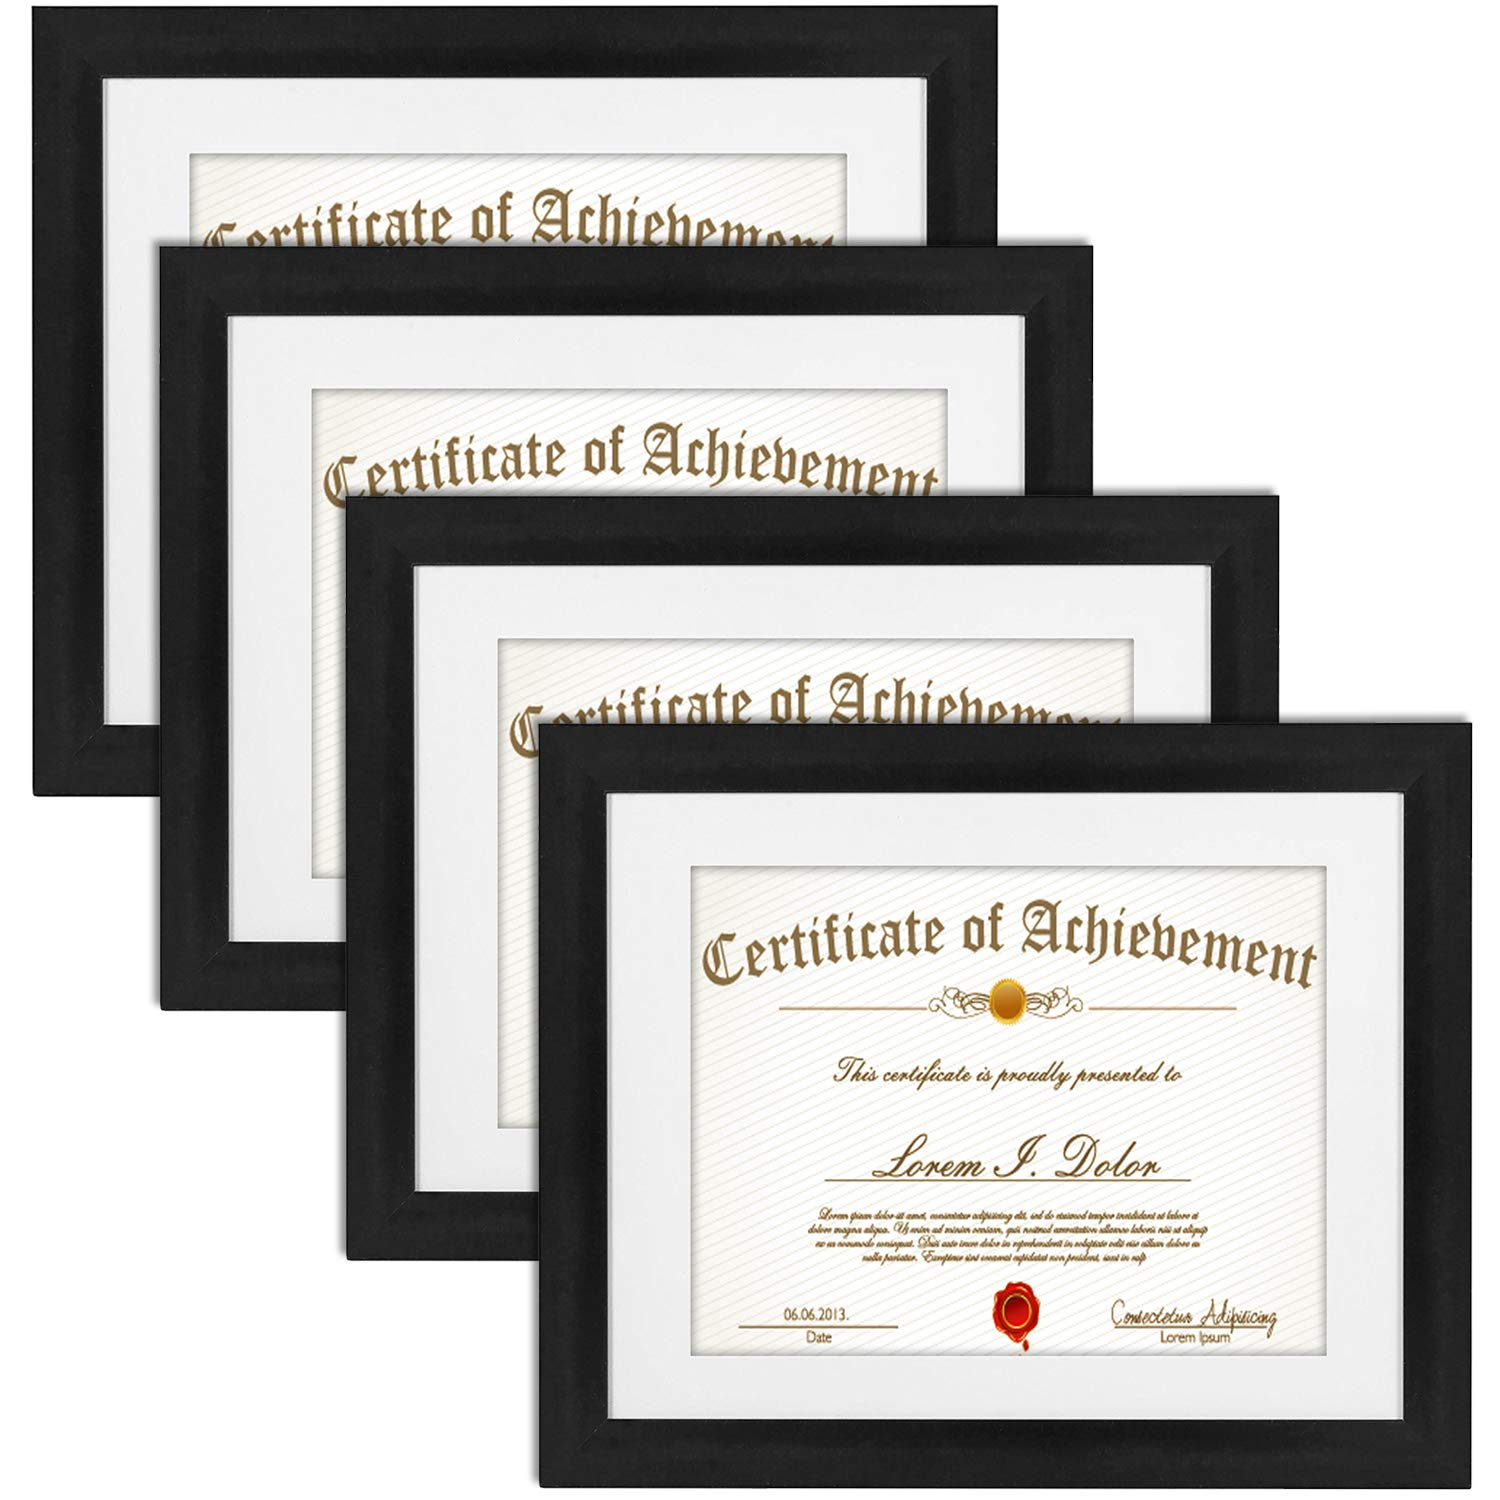 11x14 Document Picture Frame 4 Pack, Matted to 8.5x11 Frame Diploma Frame 8.5x11 Certificate Frame Wall and Desktop Display Document Frame Glass Front Solid Wood Frame 11 x 14, Set of 4